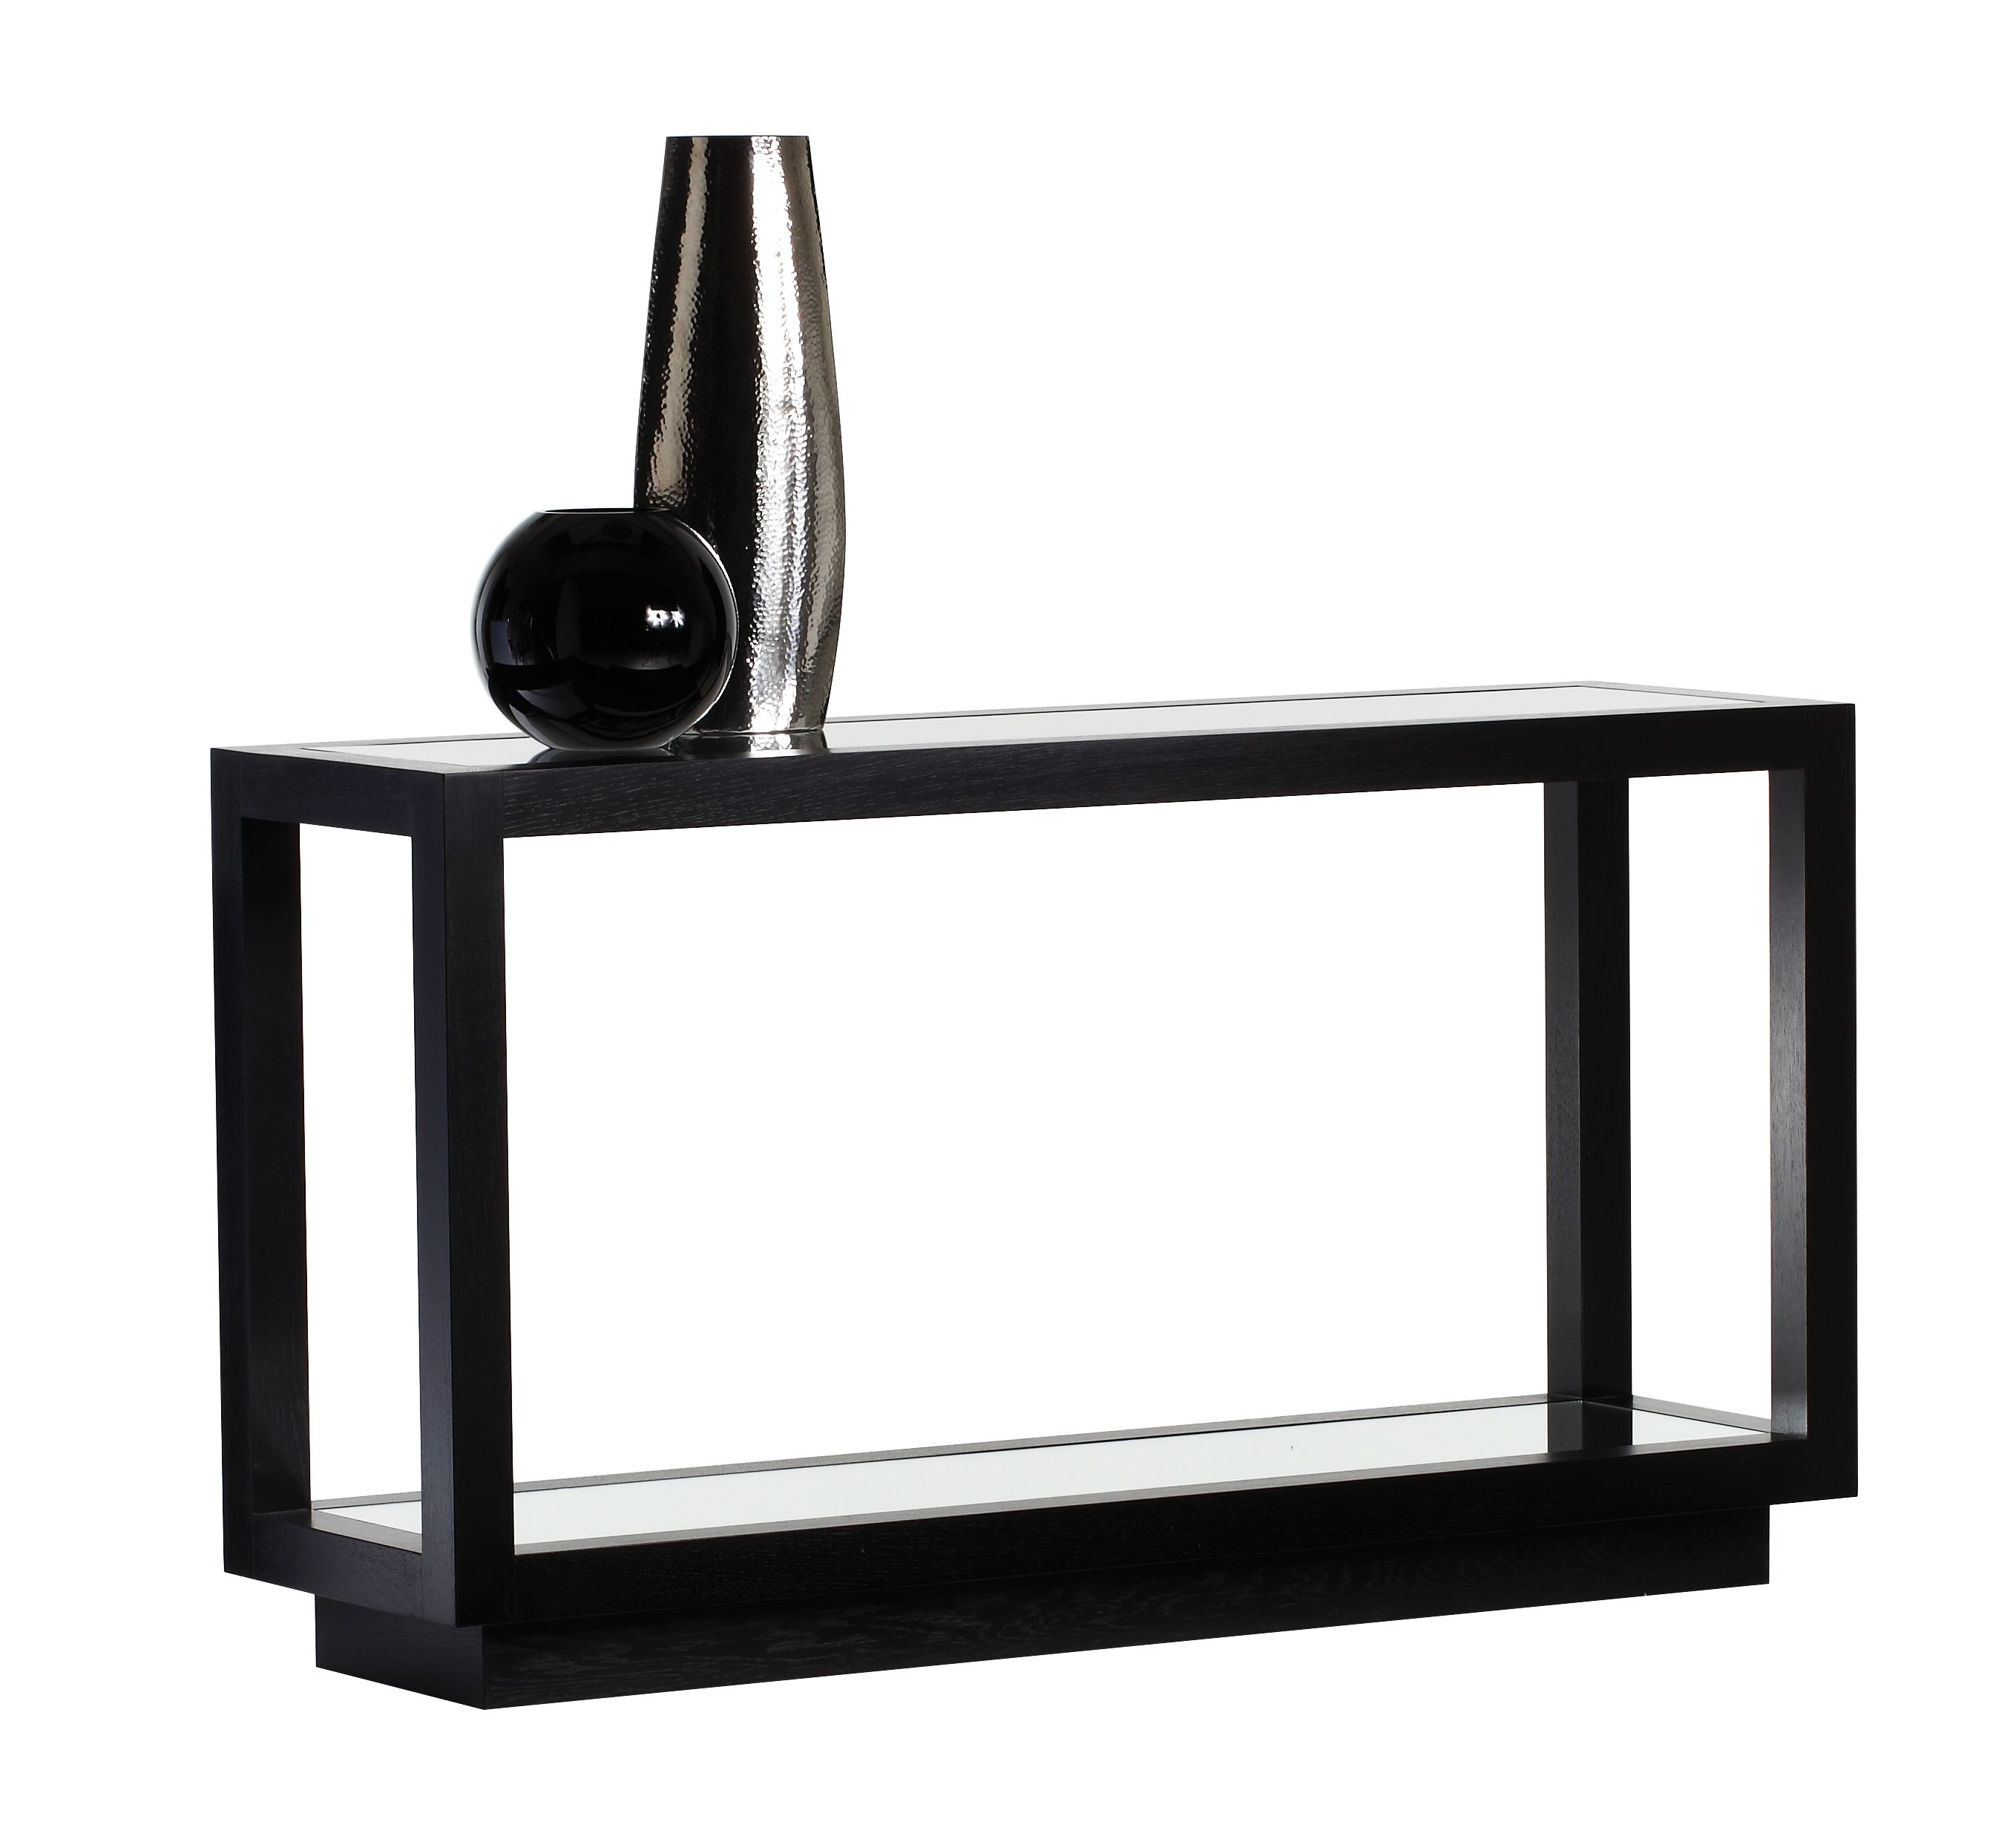 Carina Console Table Black Satin Michael Northcroft Argento  # Muebles Tipo Wimpy